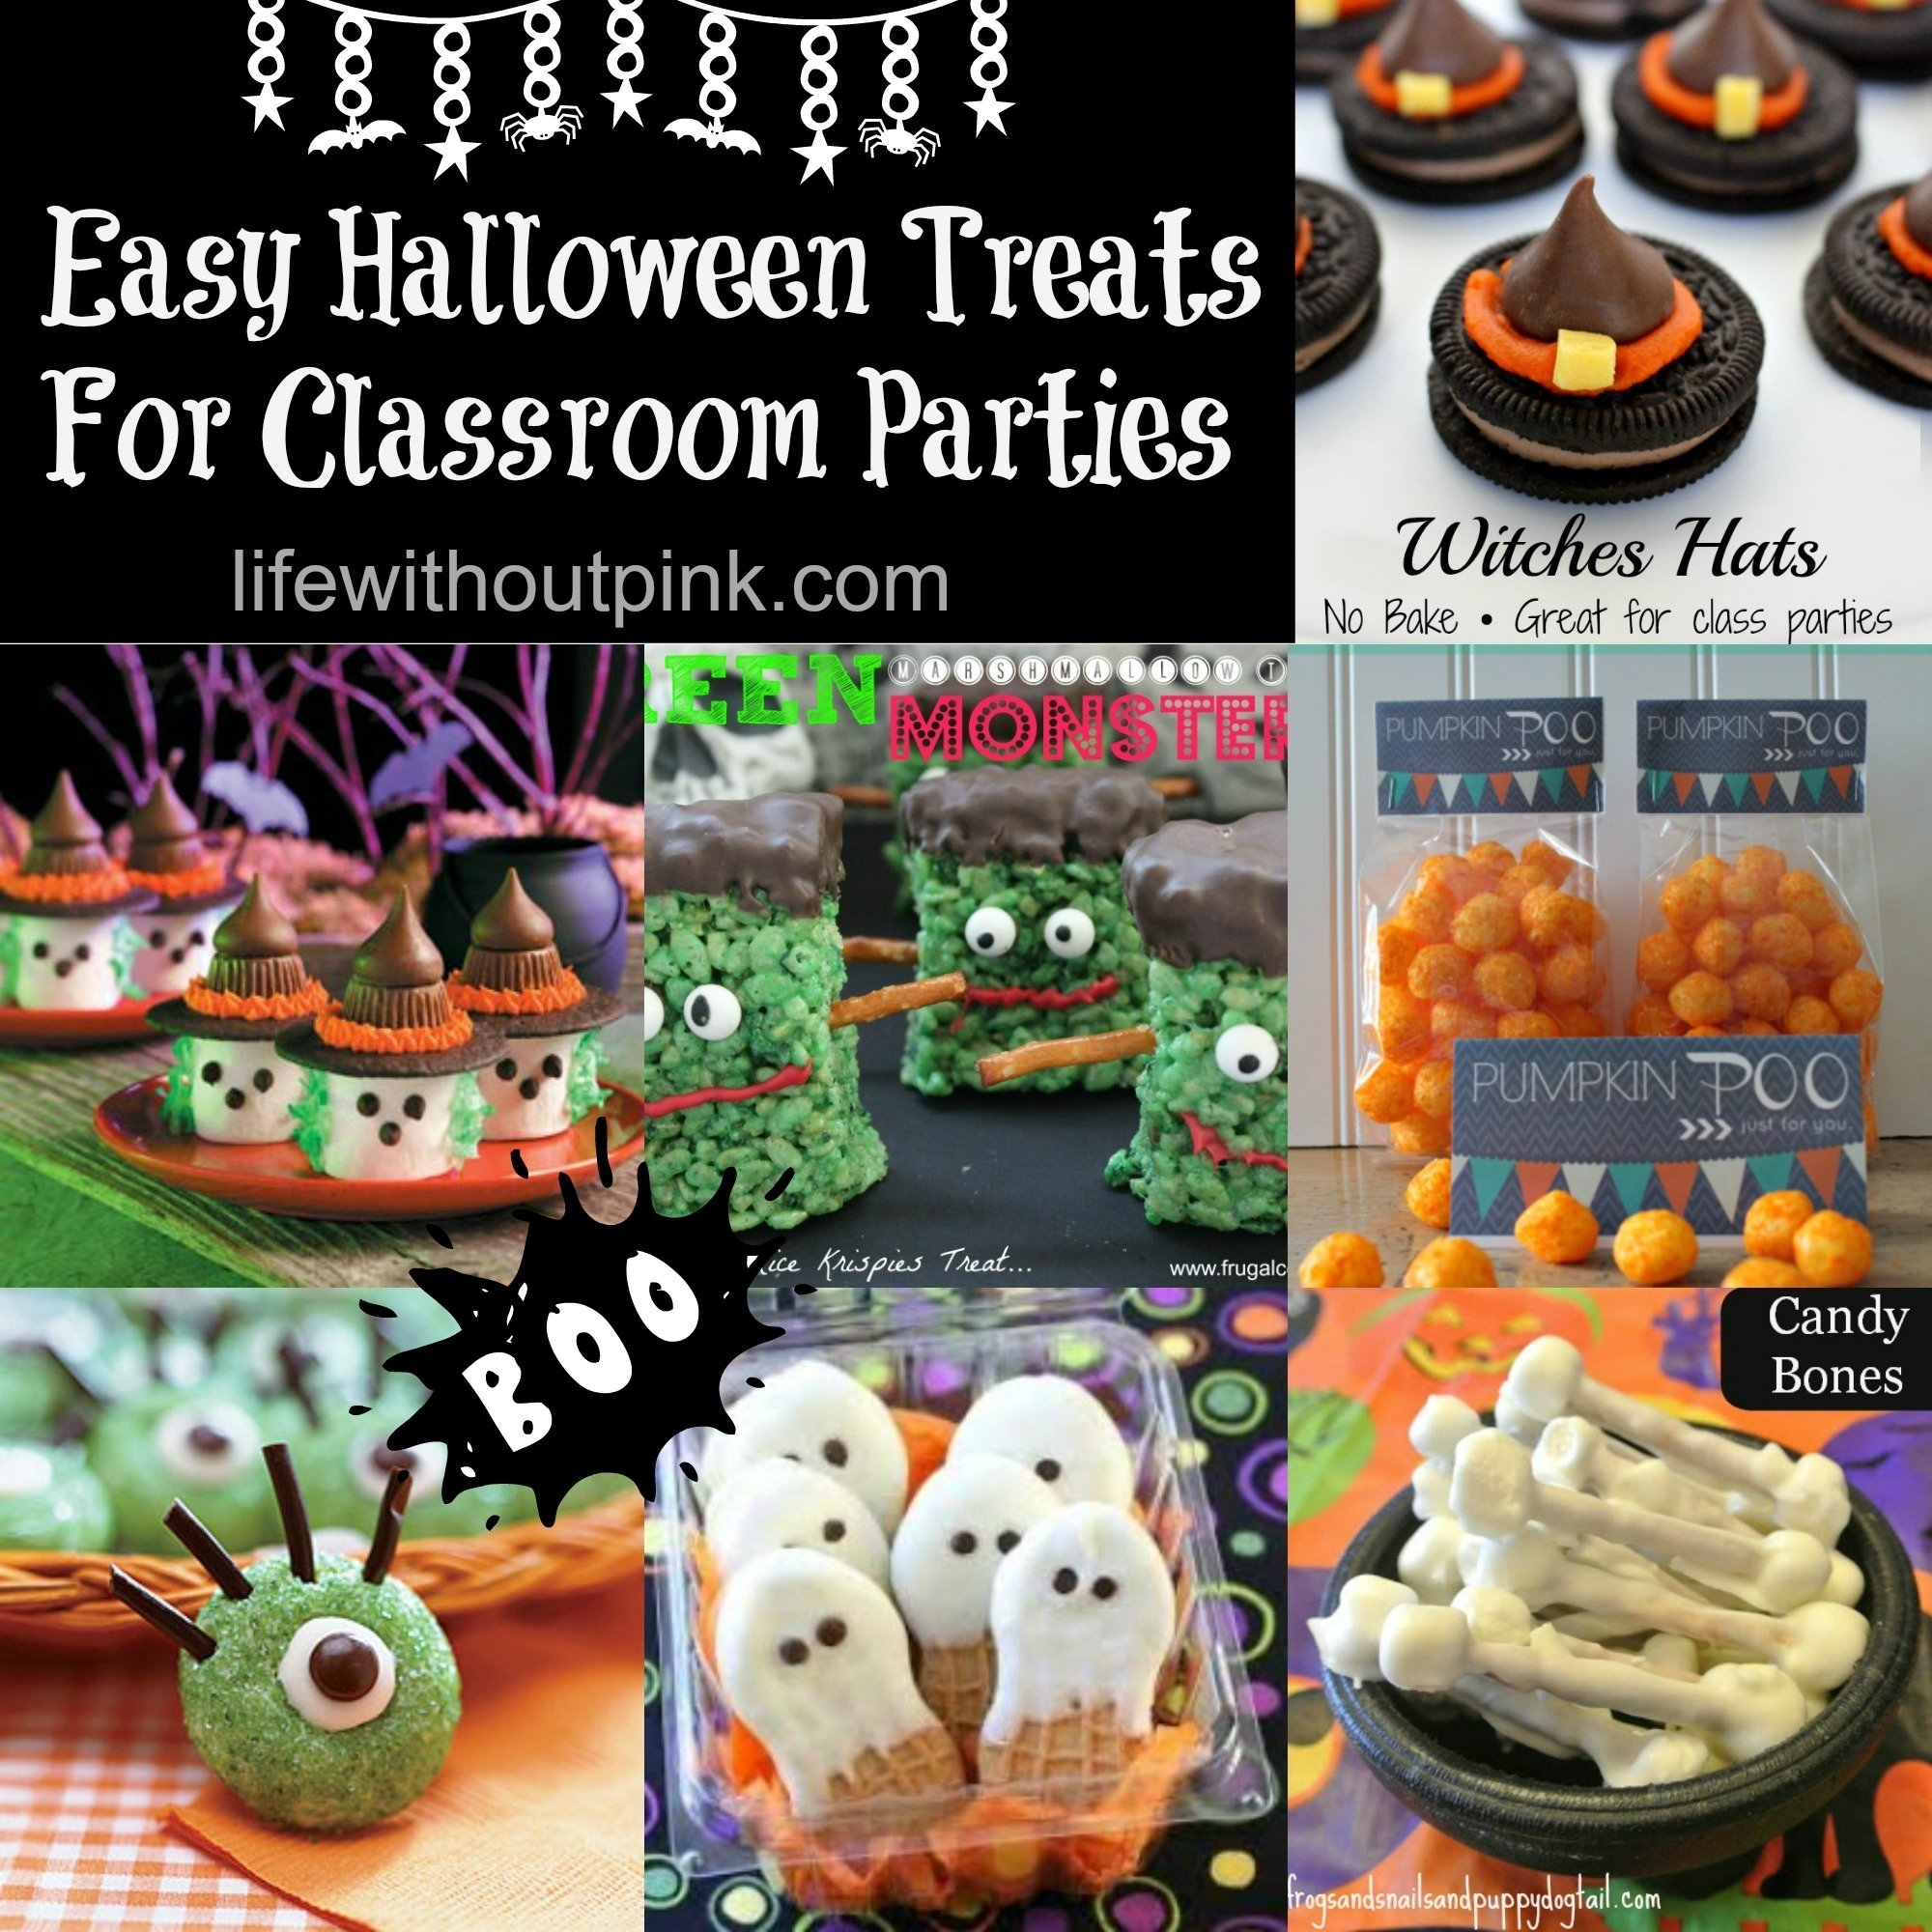 10 Unique Halloween Treat Ideas For School Parties friday fresh picks easy halloween treats for classroom parties